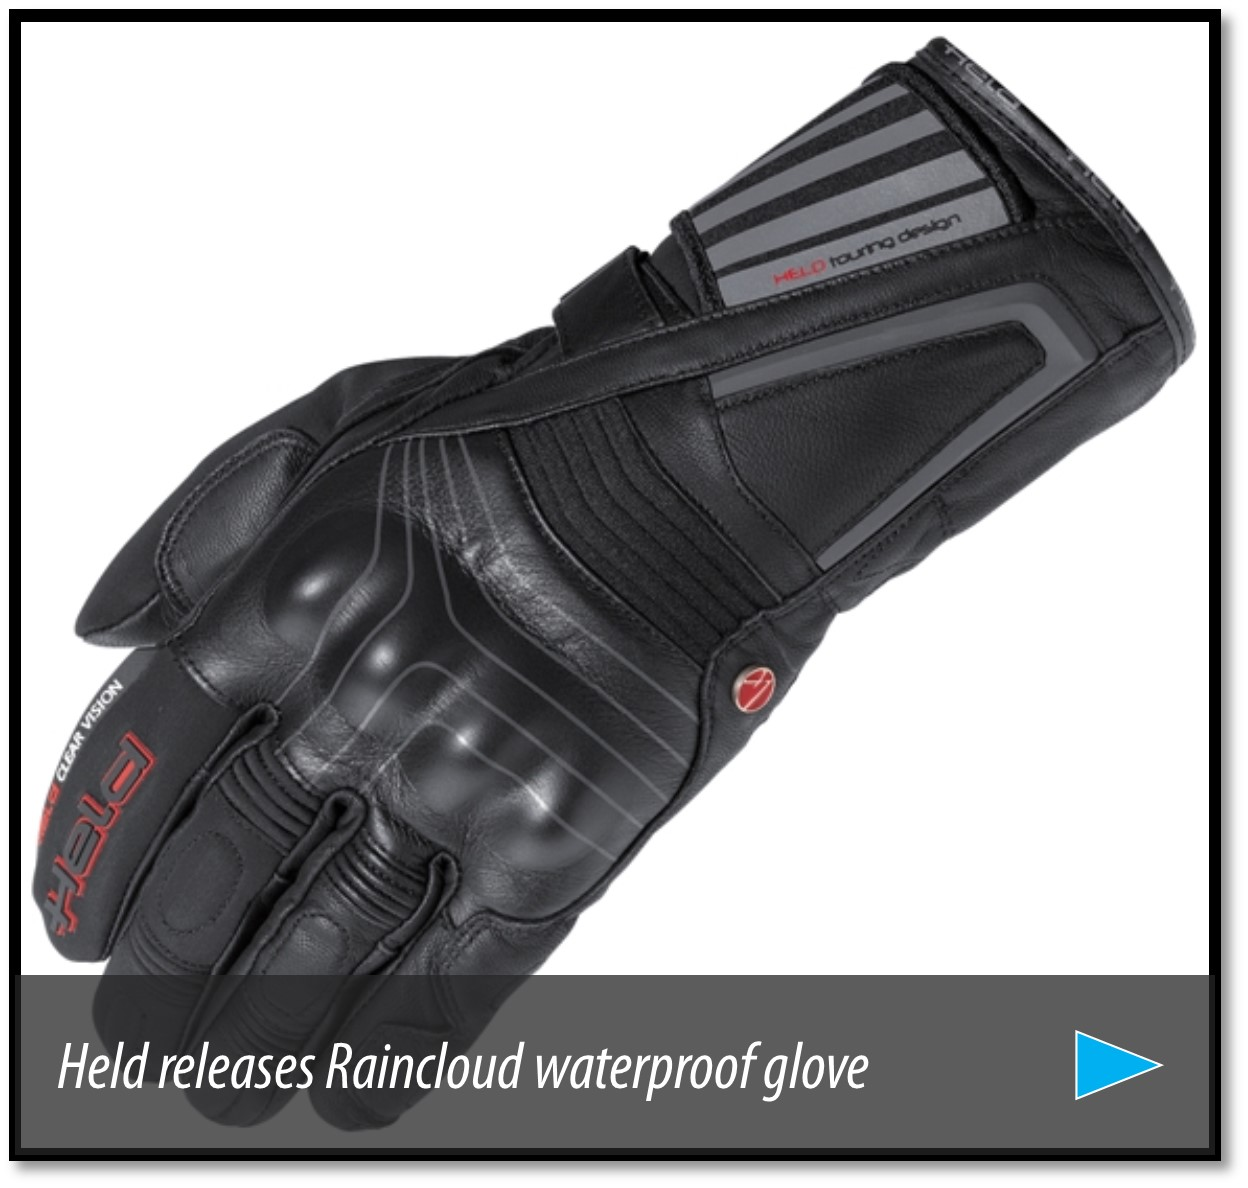 Xtrafit motorcycle gloves - Many Waterproof Gloves Are Made With Four Layers But The X Trafit Tm 3 D Membrane Lamination Process Reduces Glove Construction To Just Two Layers While